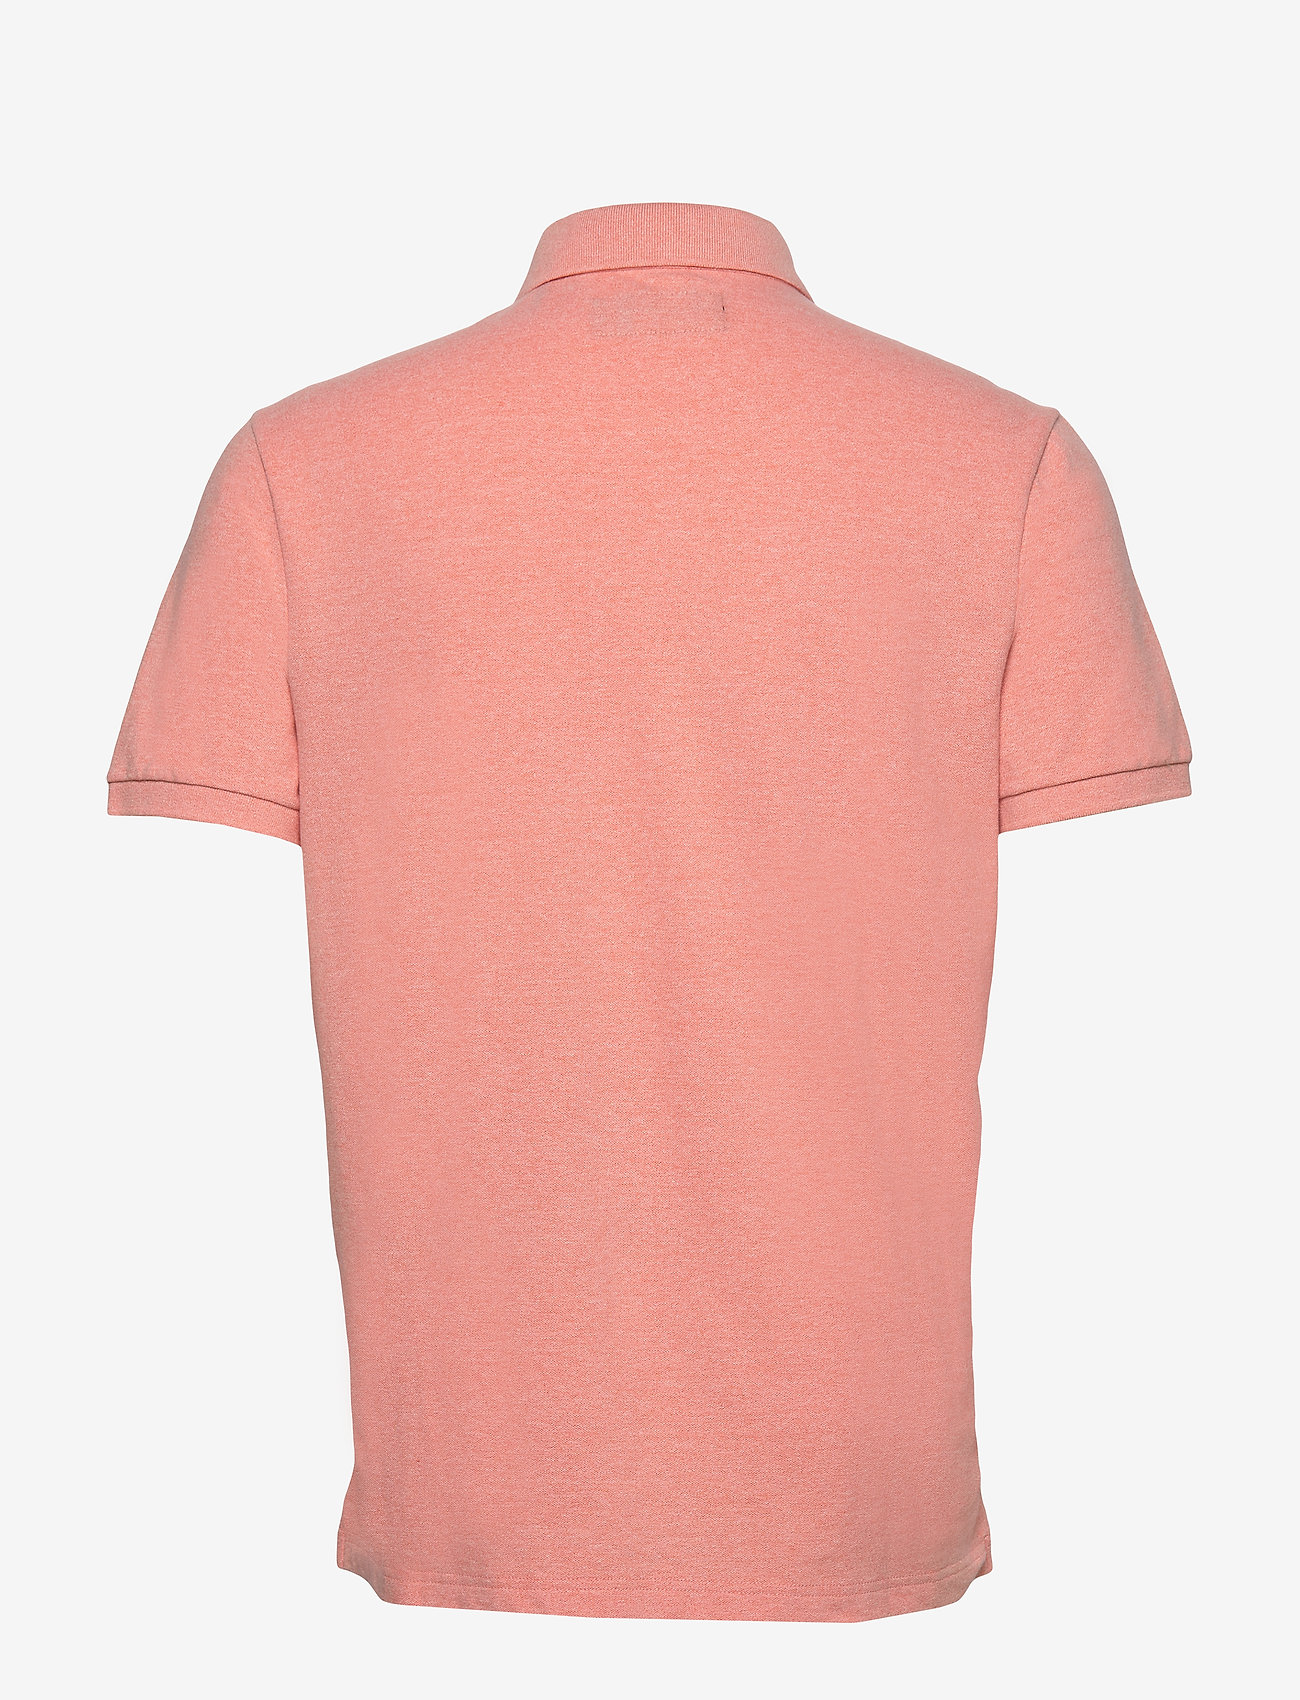 Abercrombie & Fitch Coral Siro Core Polo - Shirts